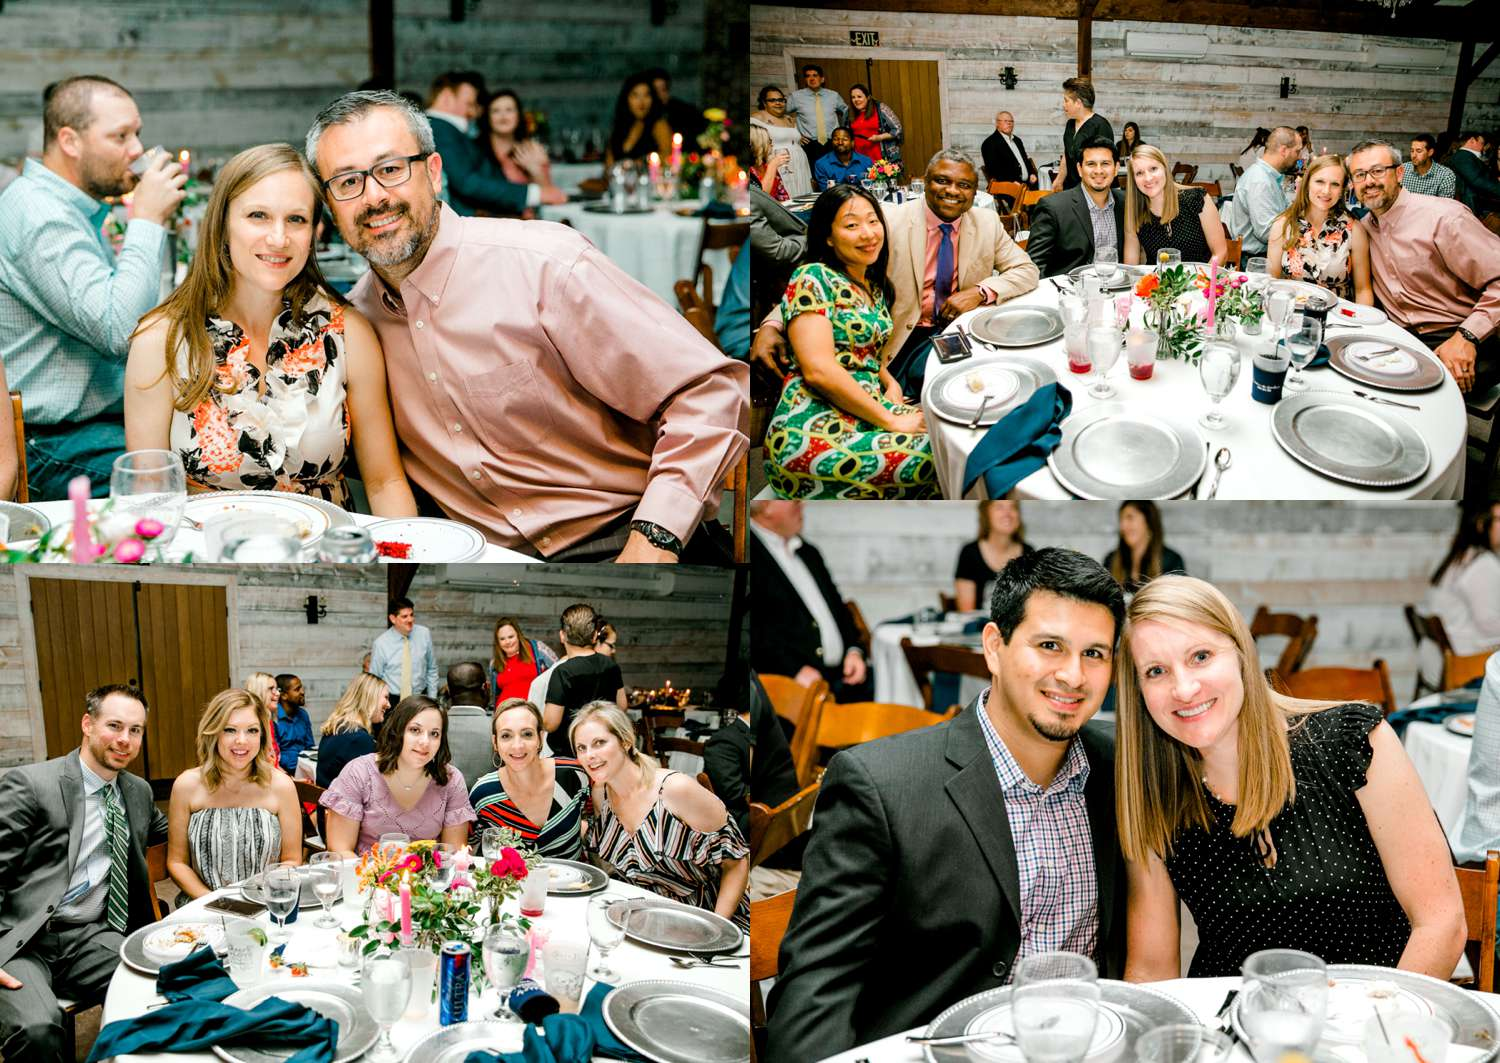 TIMMI+JORDAN_IRVINE_EBERLEY_BROOKS_EVENTS_ALLEEJ_WEDDINGS_0126.jpg